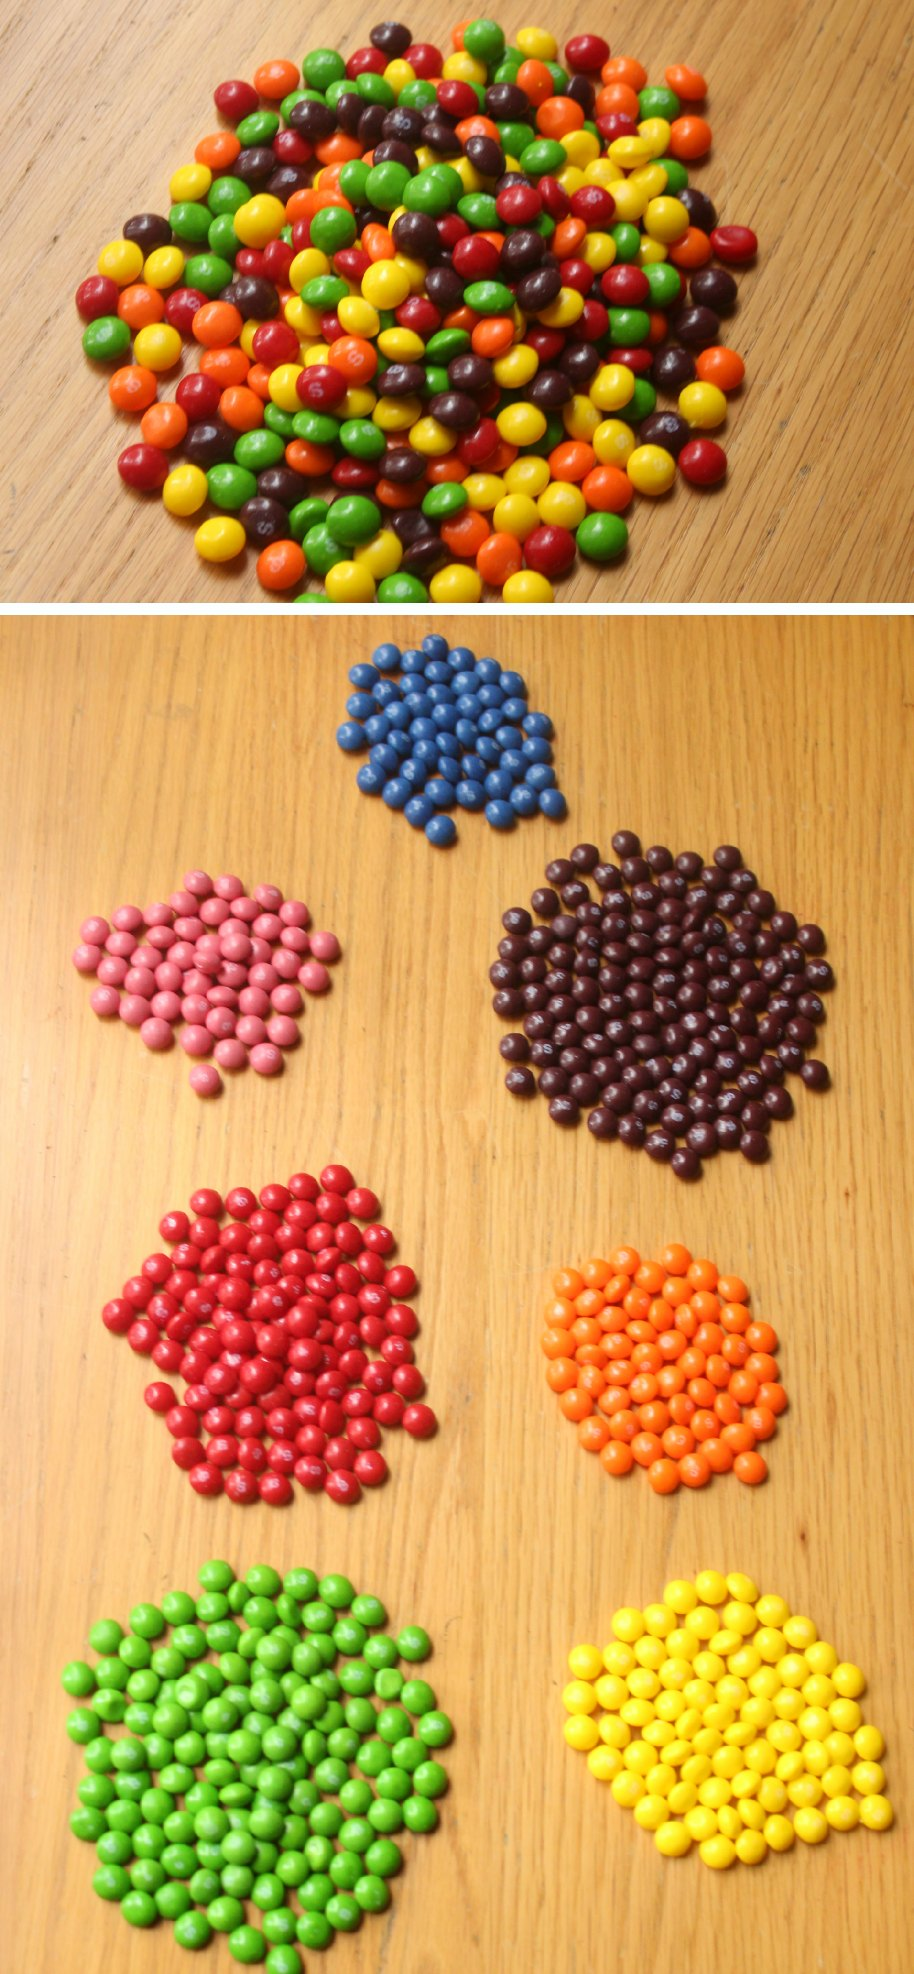 Color sorting candies